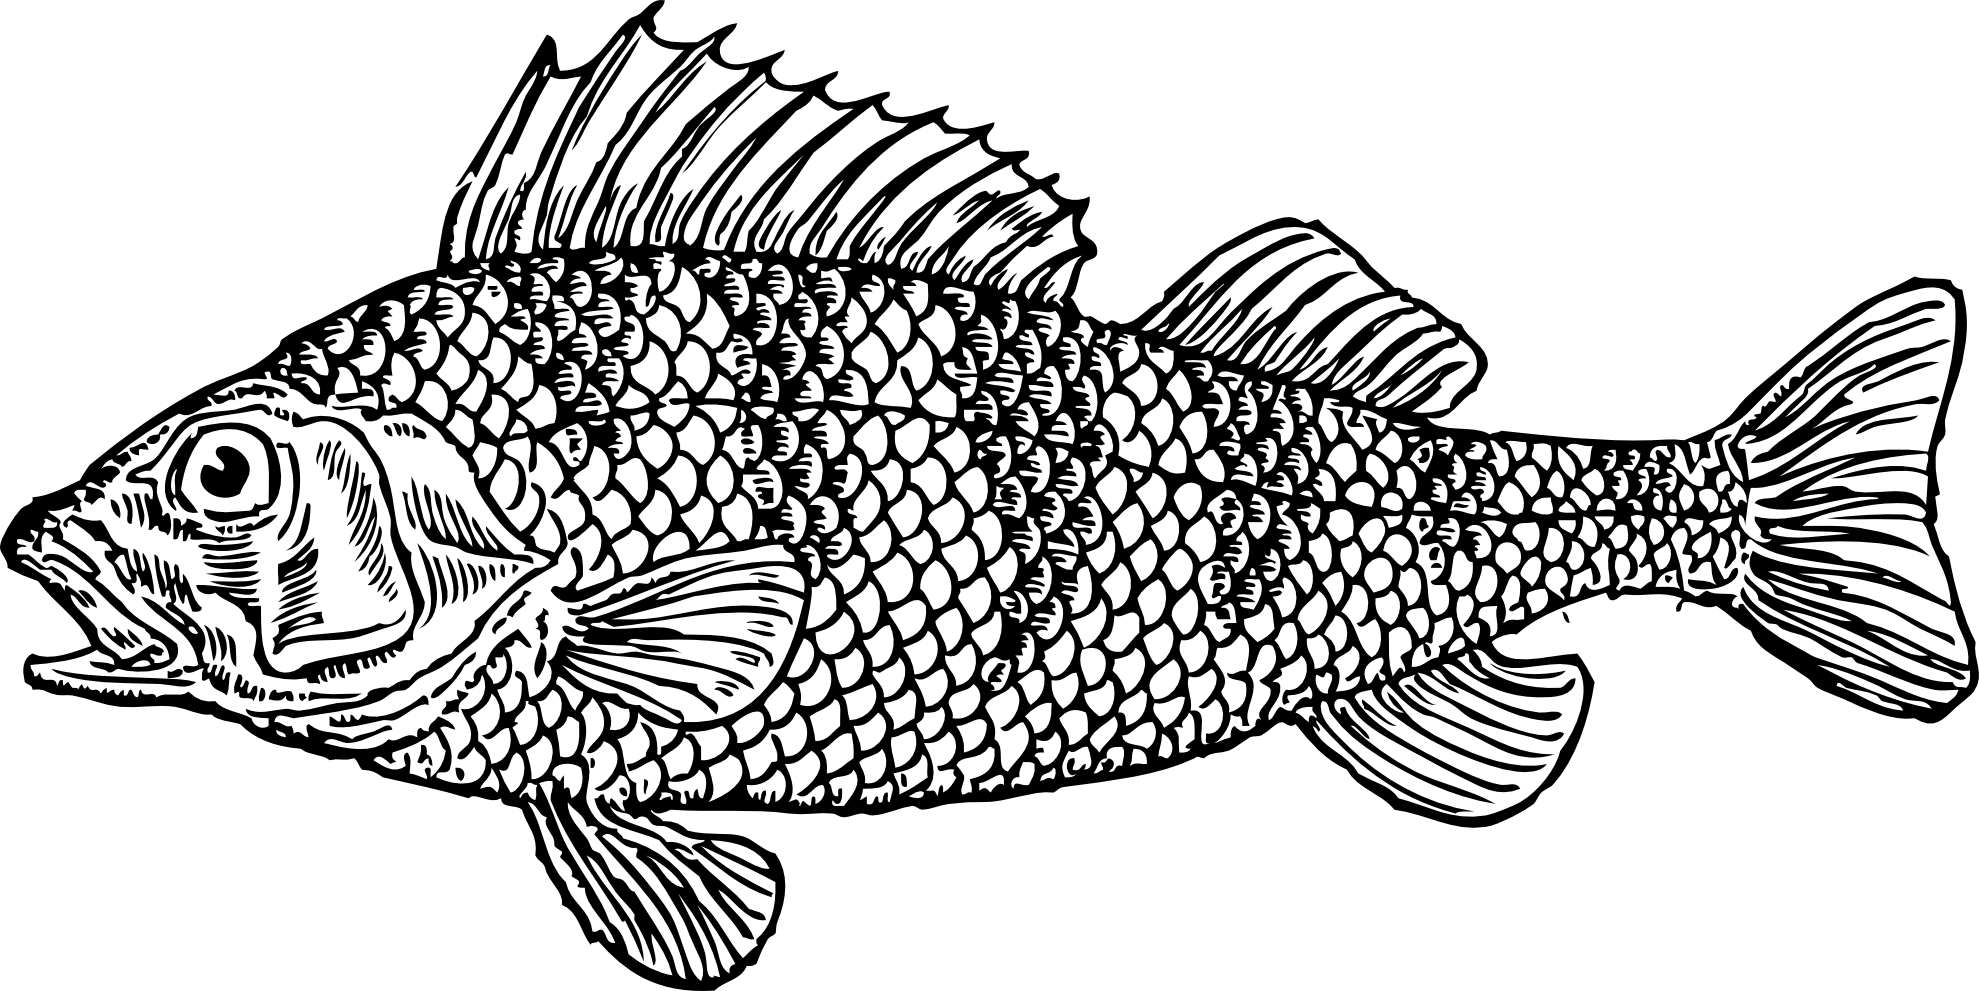 Fish  black and white fish black and white clipart kid 2